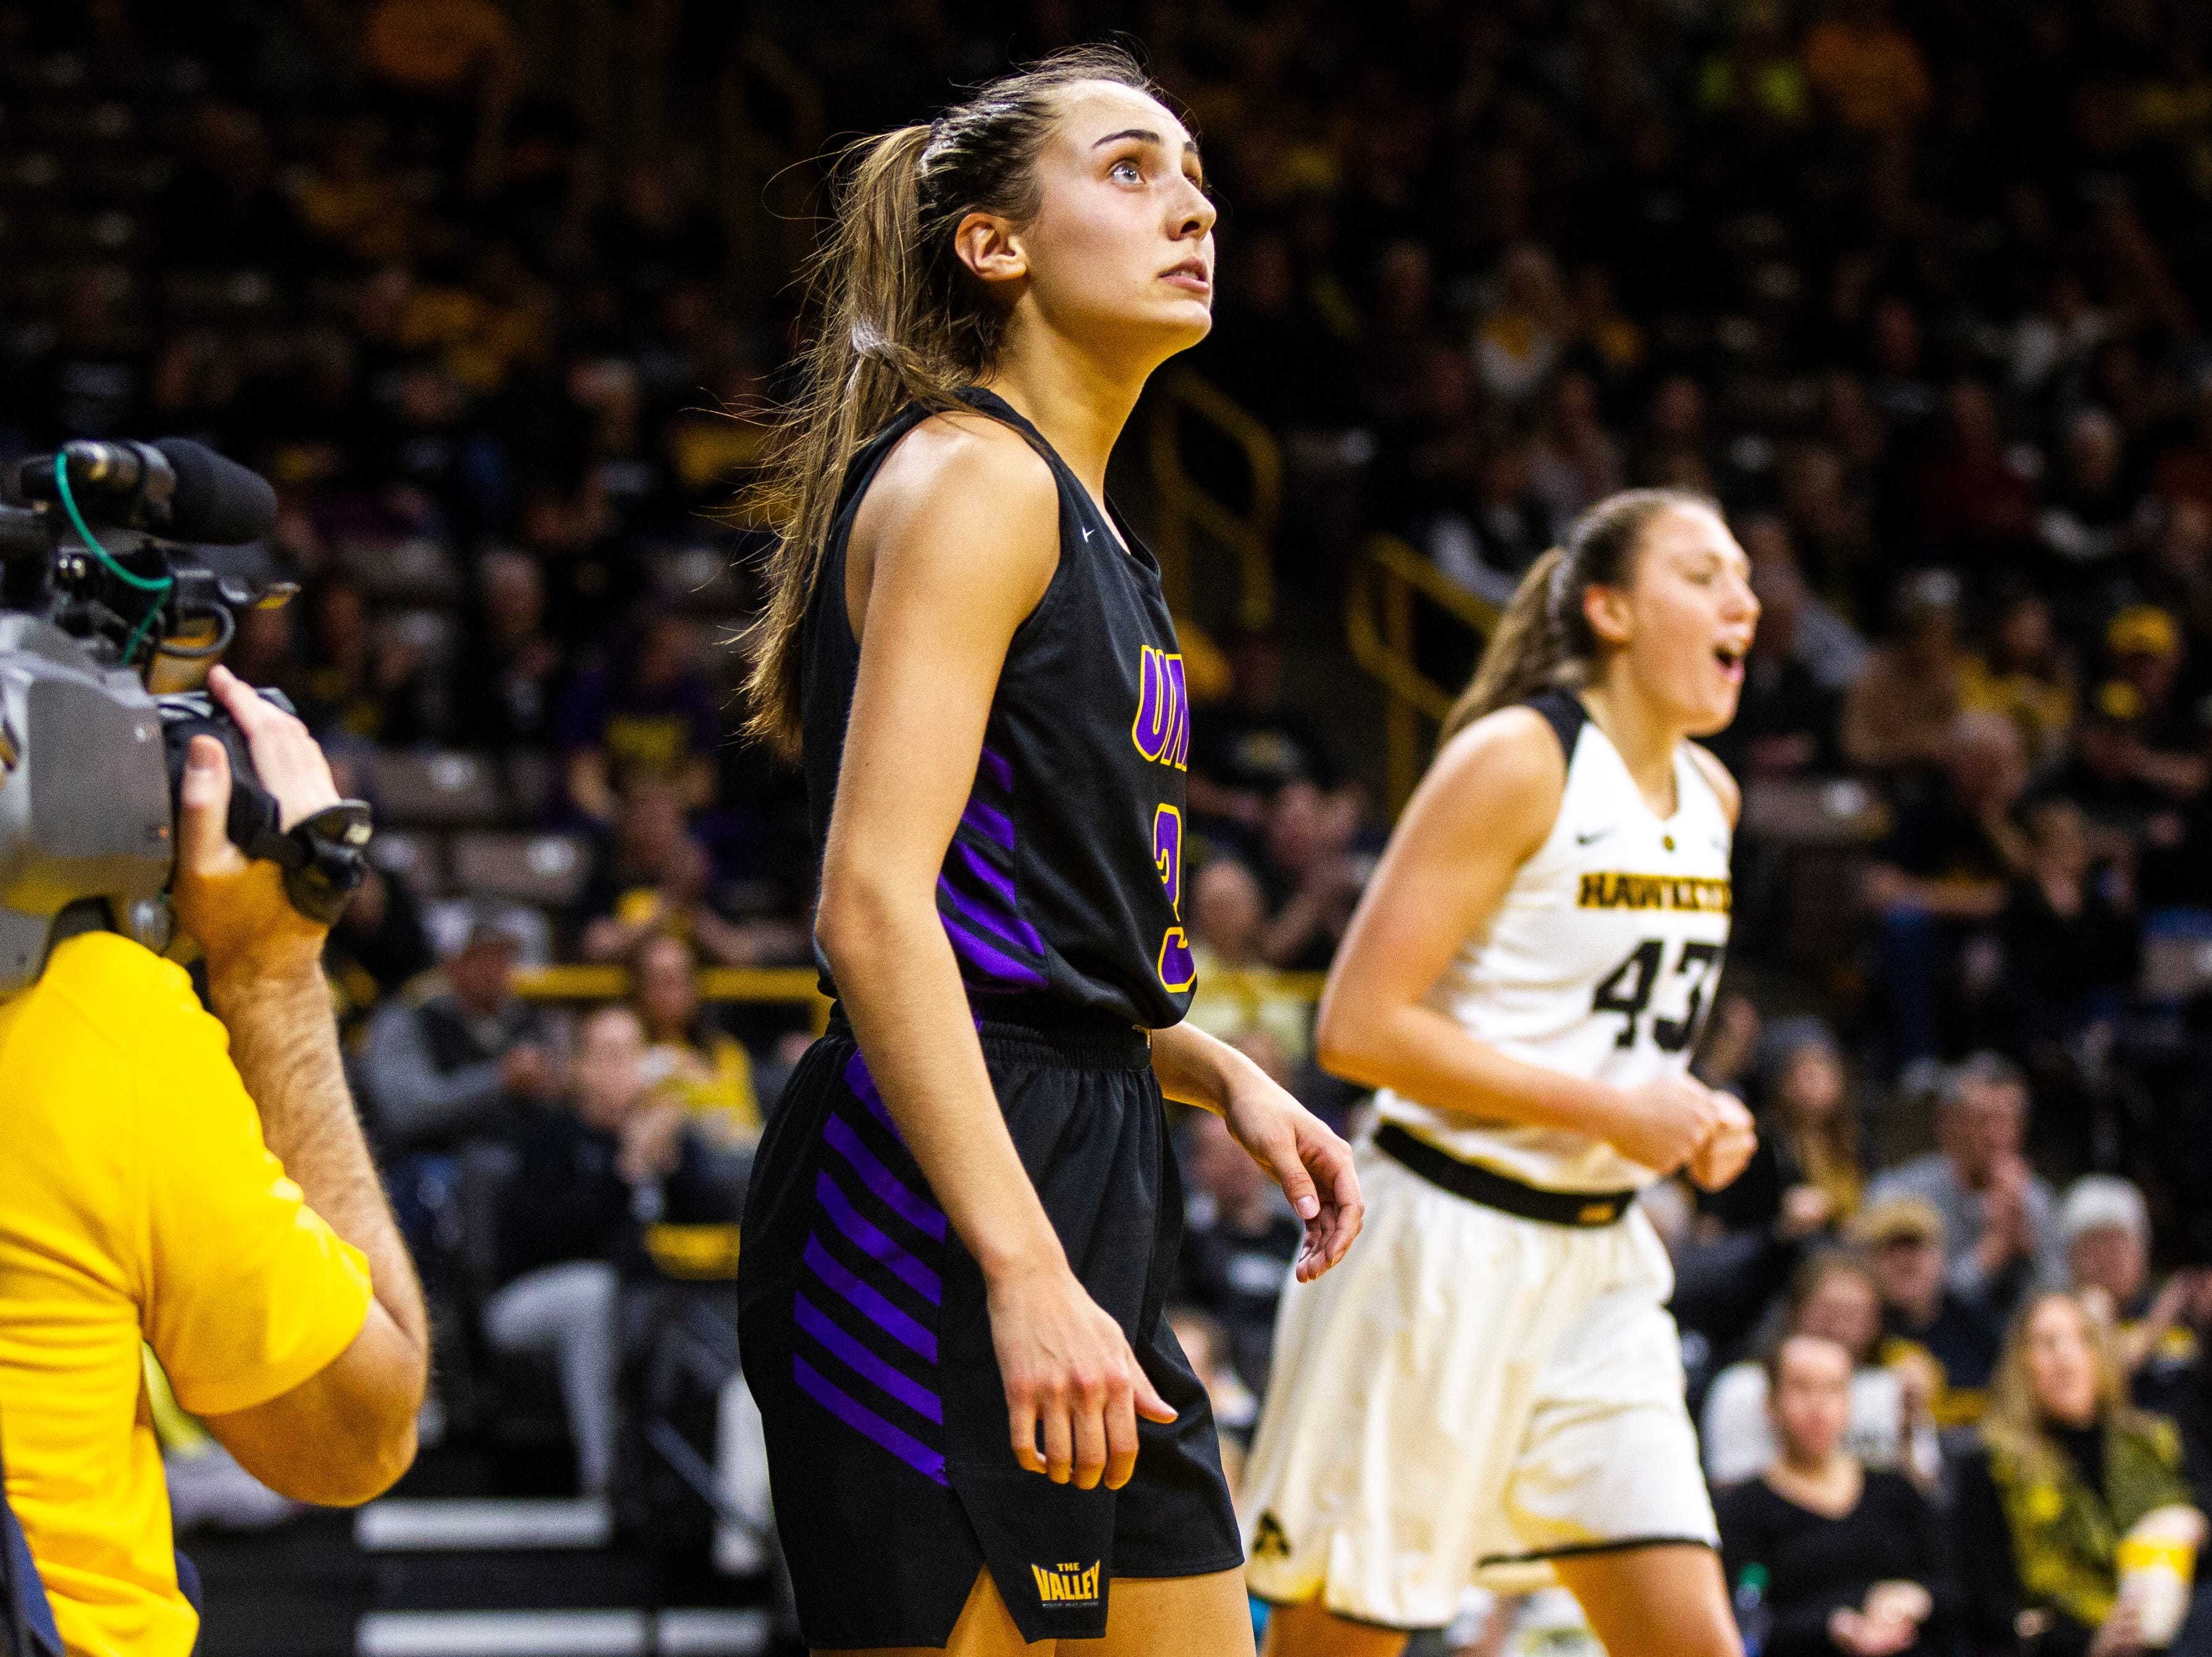 Northern Iowa guard Karli Rucker (3) looks up at a scoreboard after having her shot blocked during a NCAA women's basketball game on Sunday, Dec. 16, 2018, at Carver-Hawkeye Arena in Iowa City.